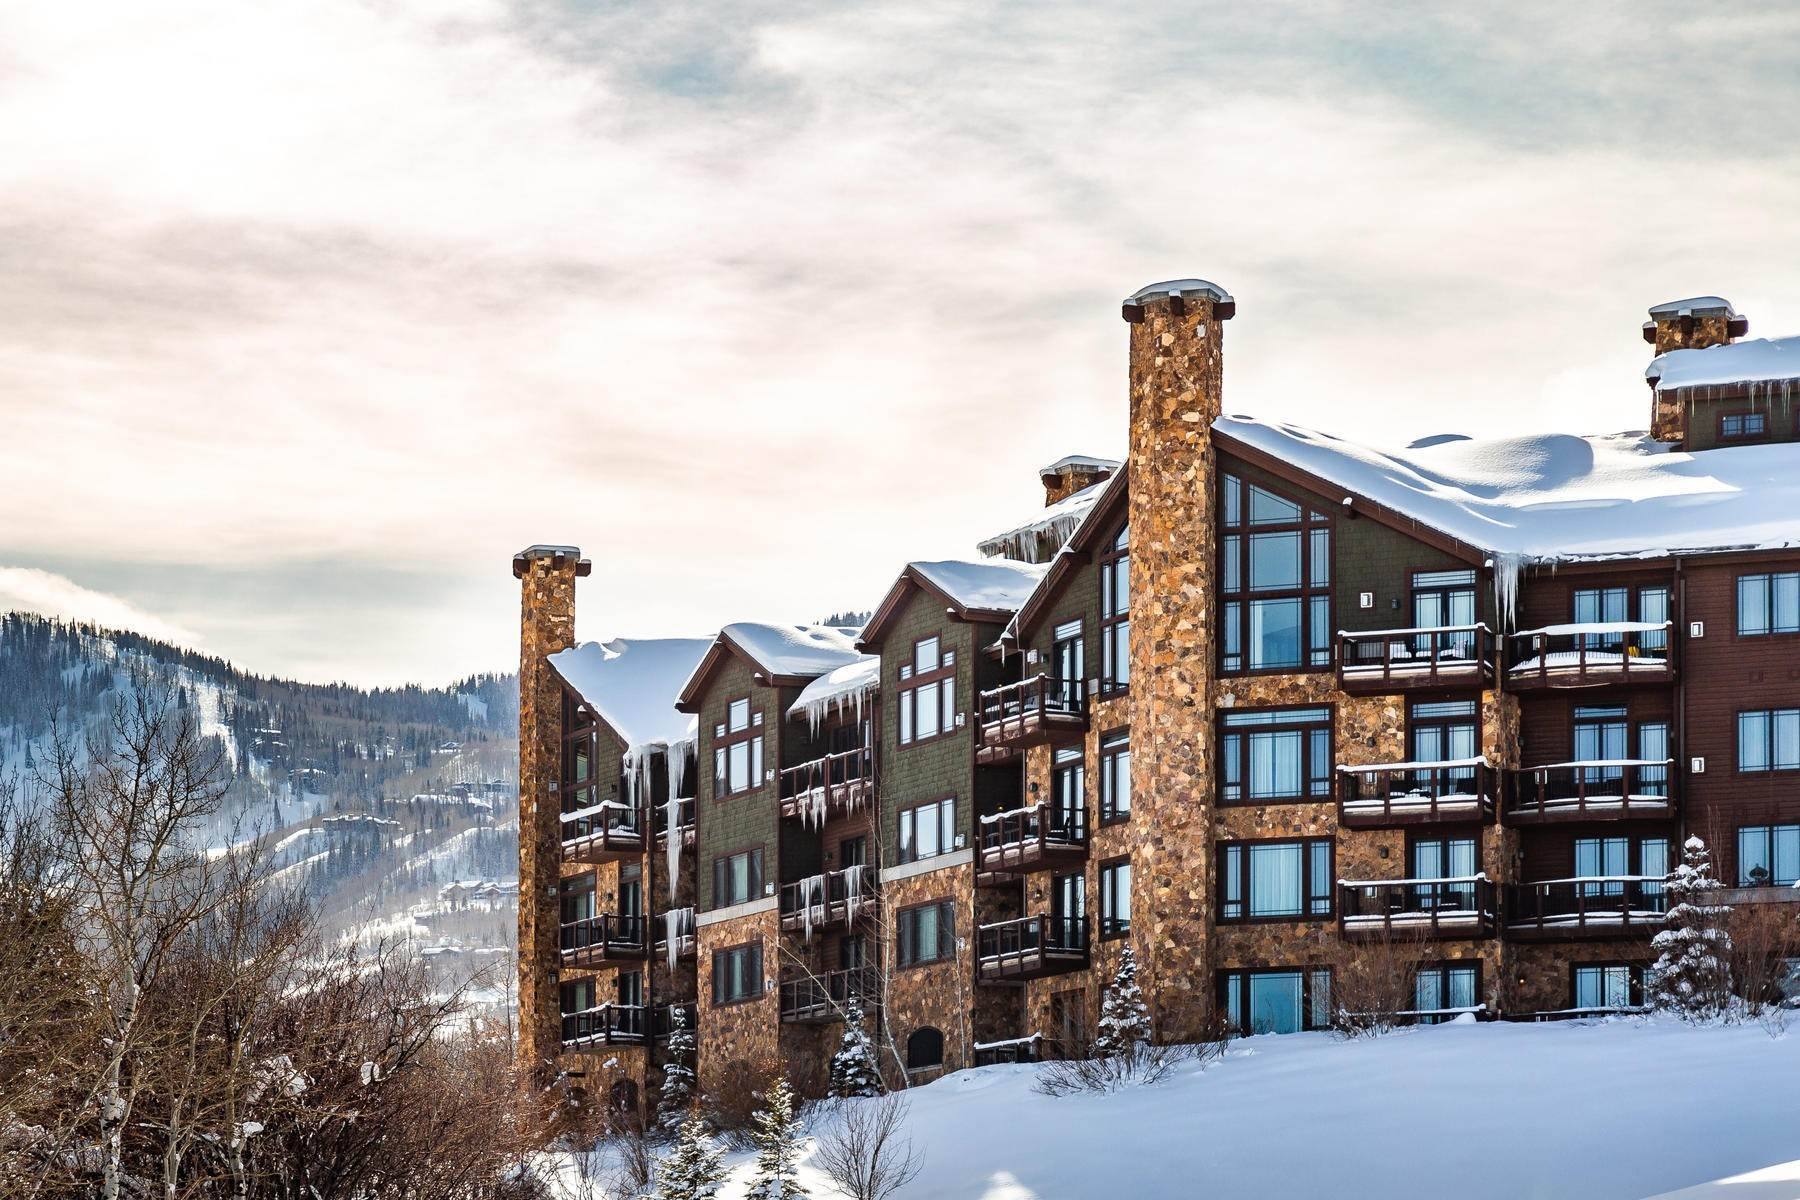 Property for Sale at Waldorf Astoria with Stunning Views, Privacy and Recently Updated! 2100 W Frostwood Boulevard #5172 Park City, Utah 84098 United States